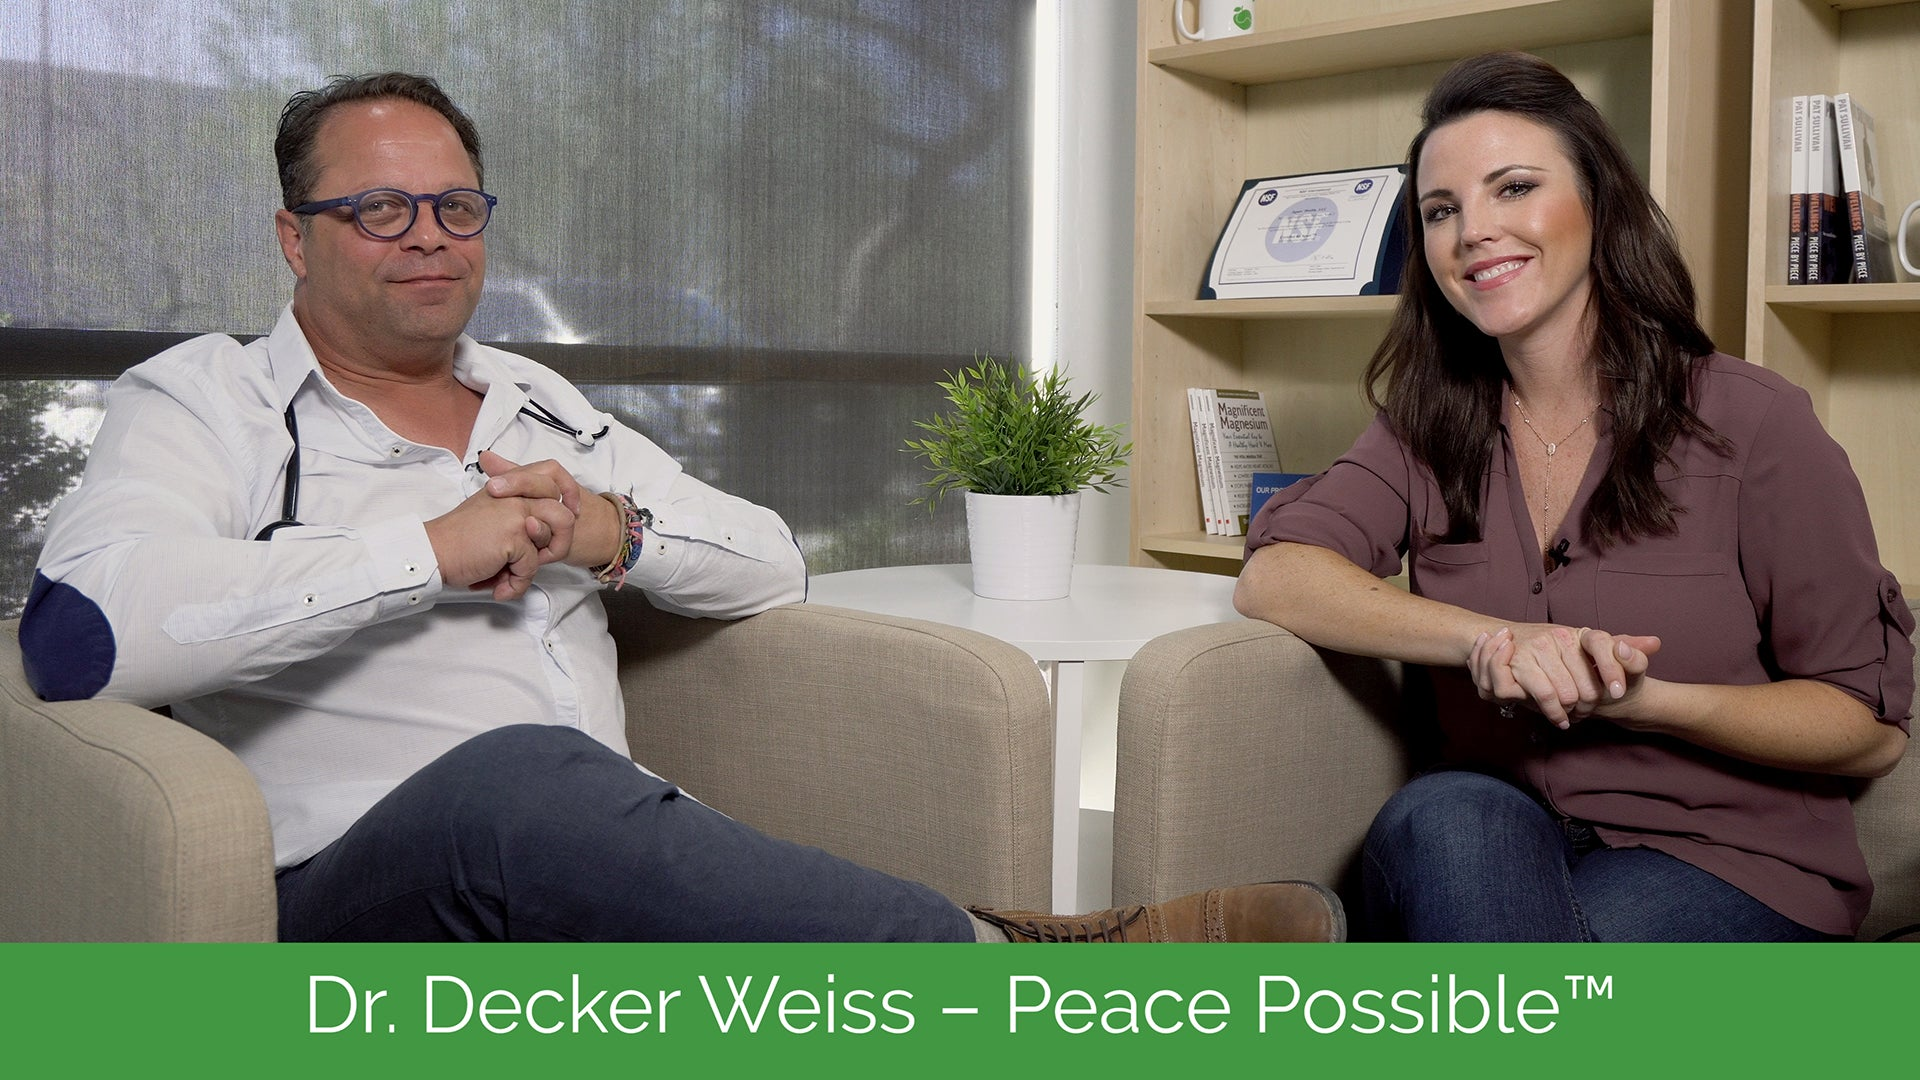 Dr. Decker Weiss - Peace Possible™ | #AshWednesday